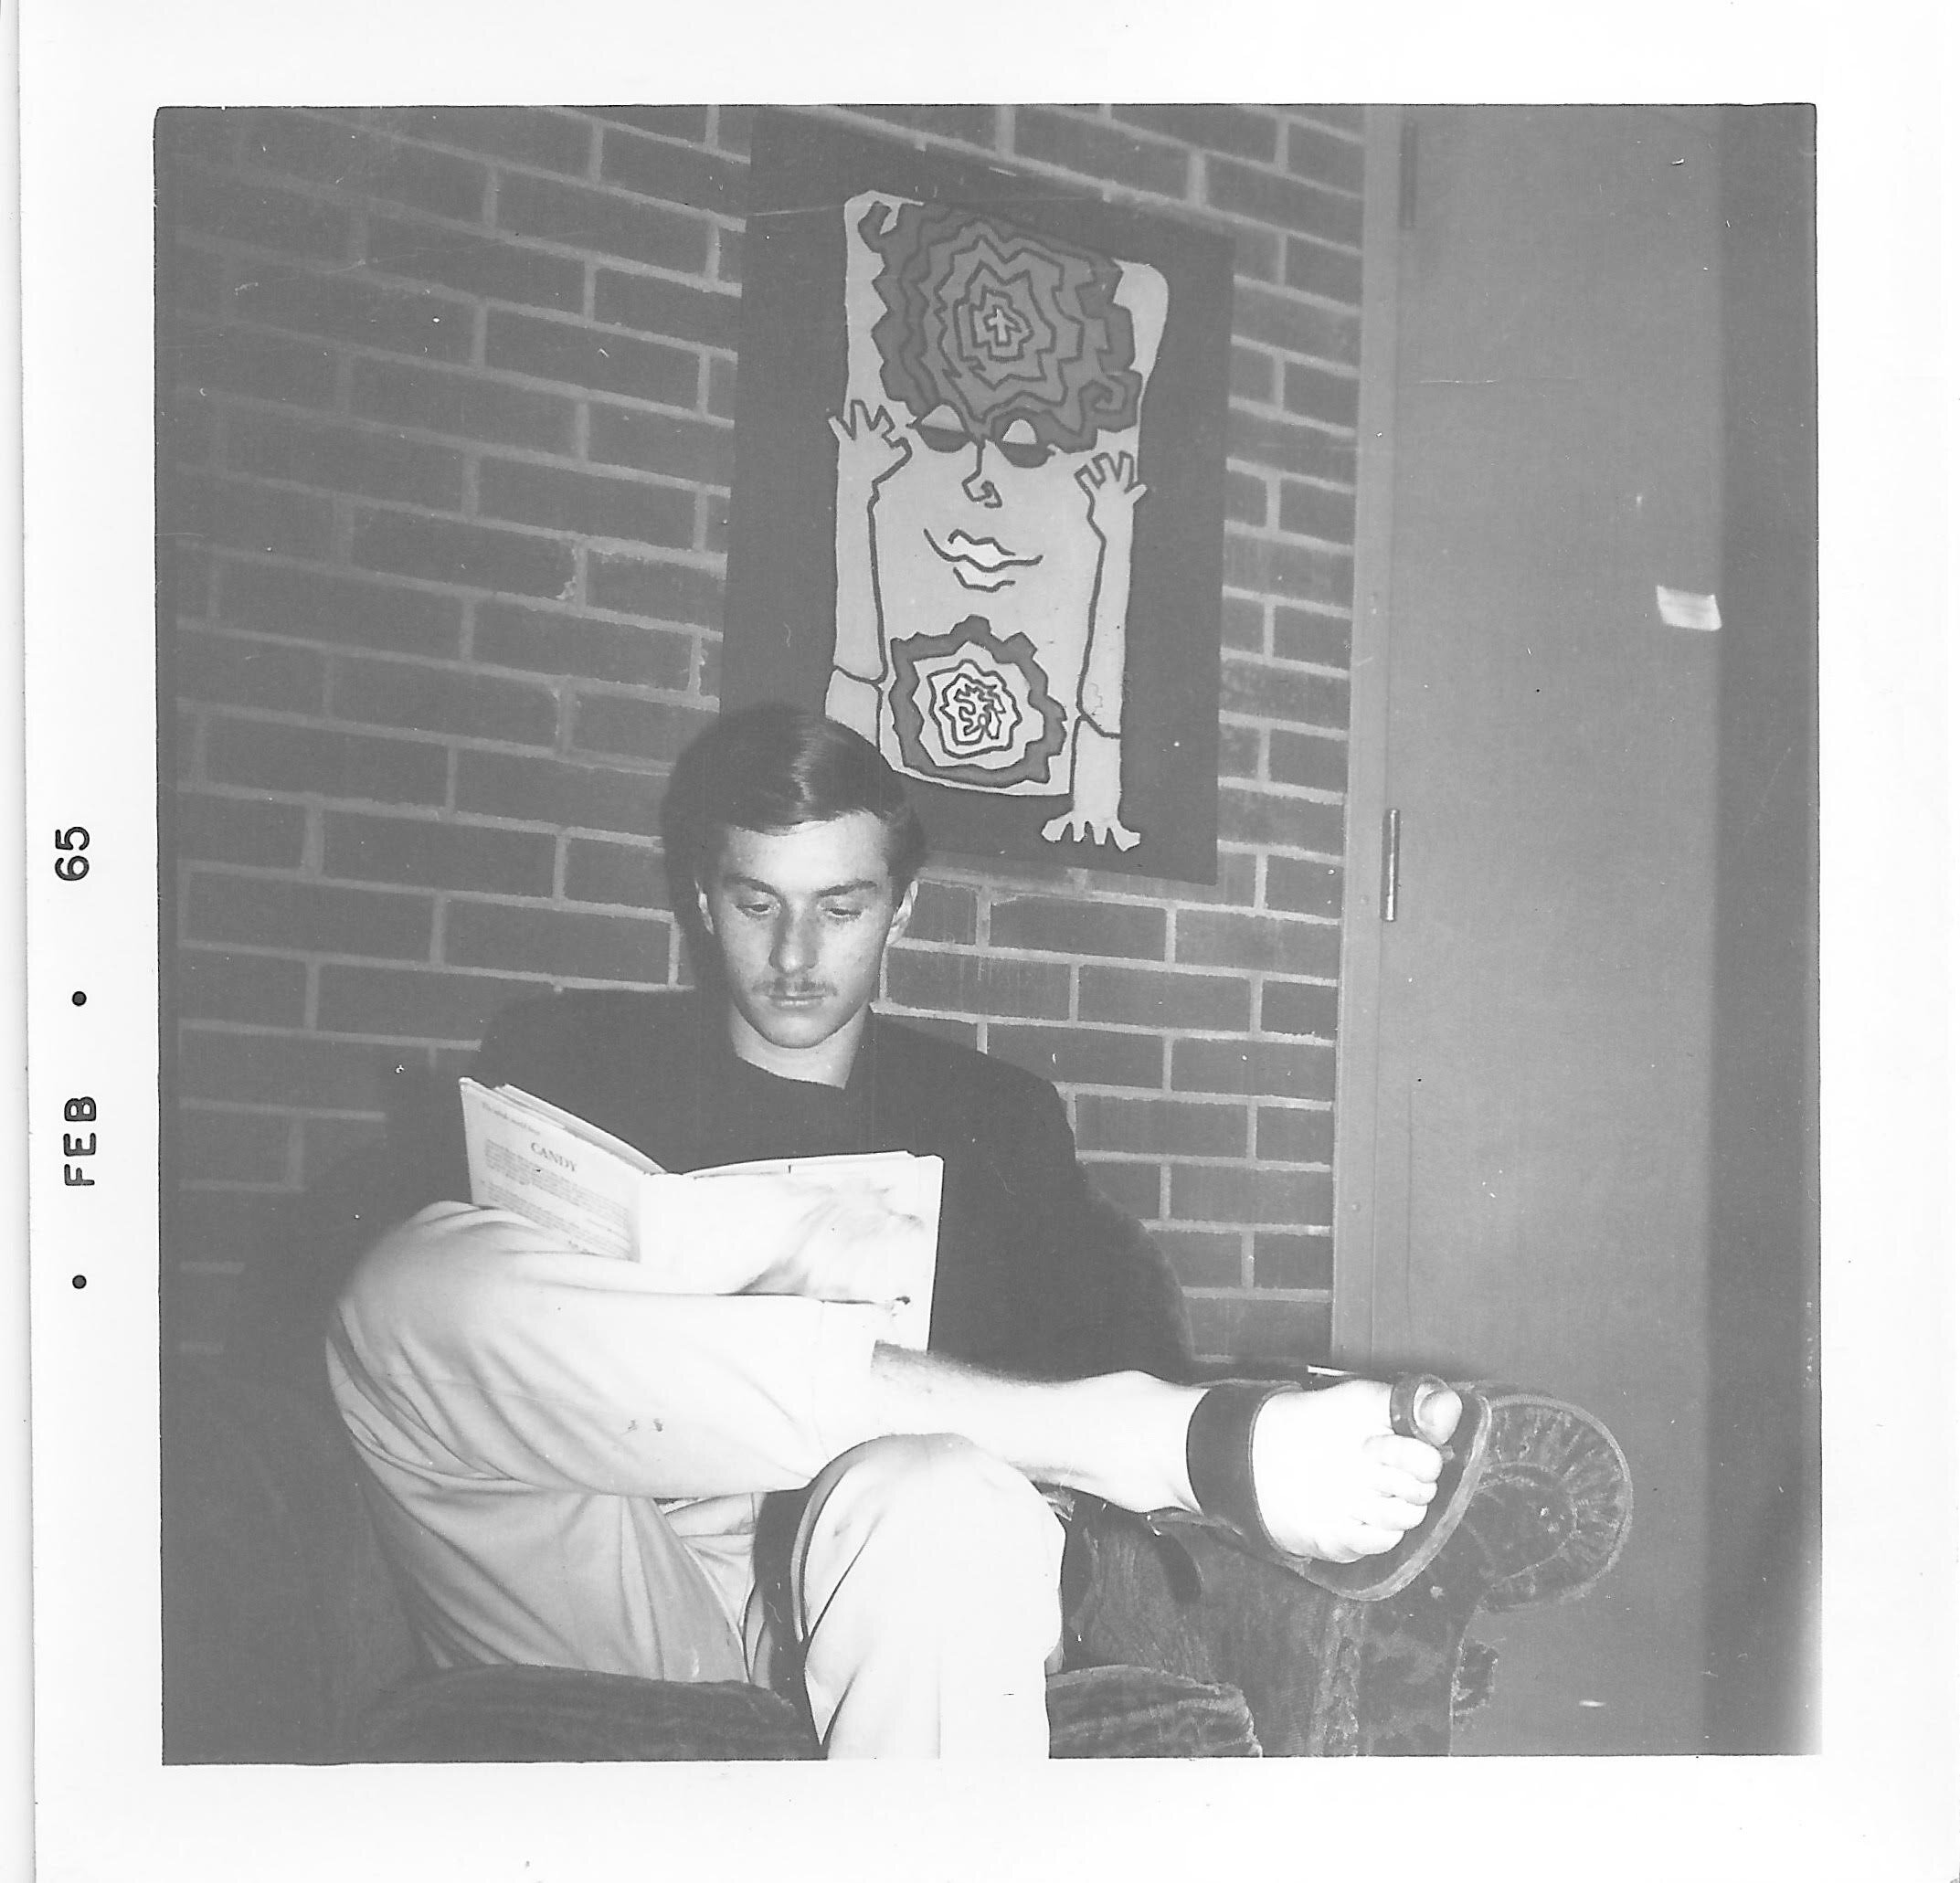 Howard in 1965 at Reed College